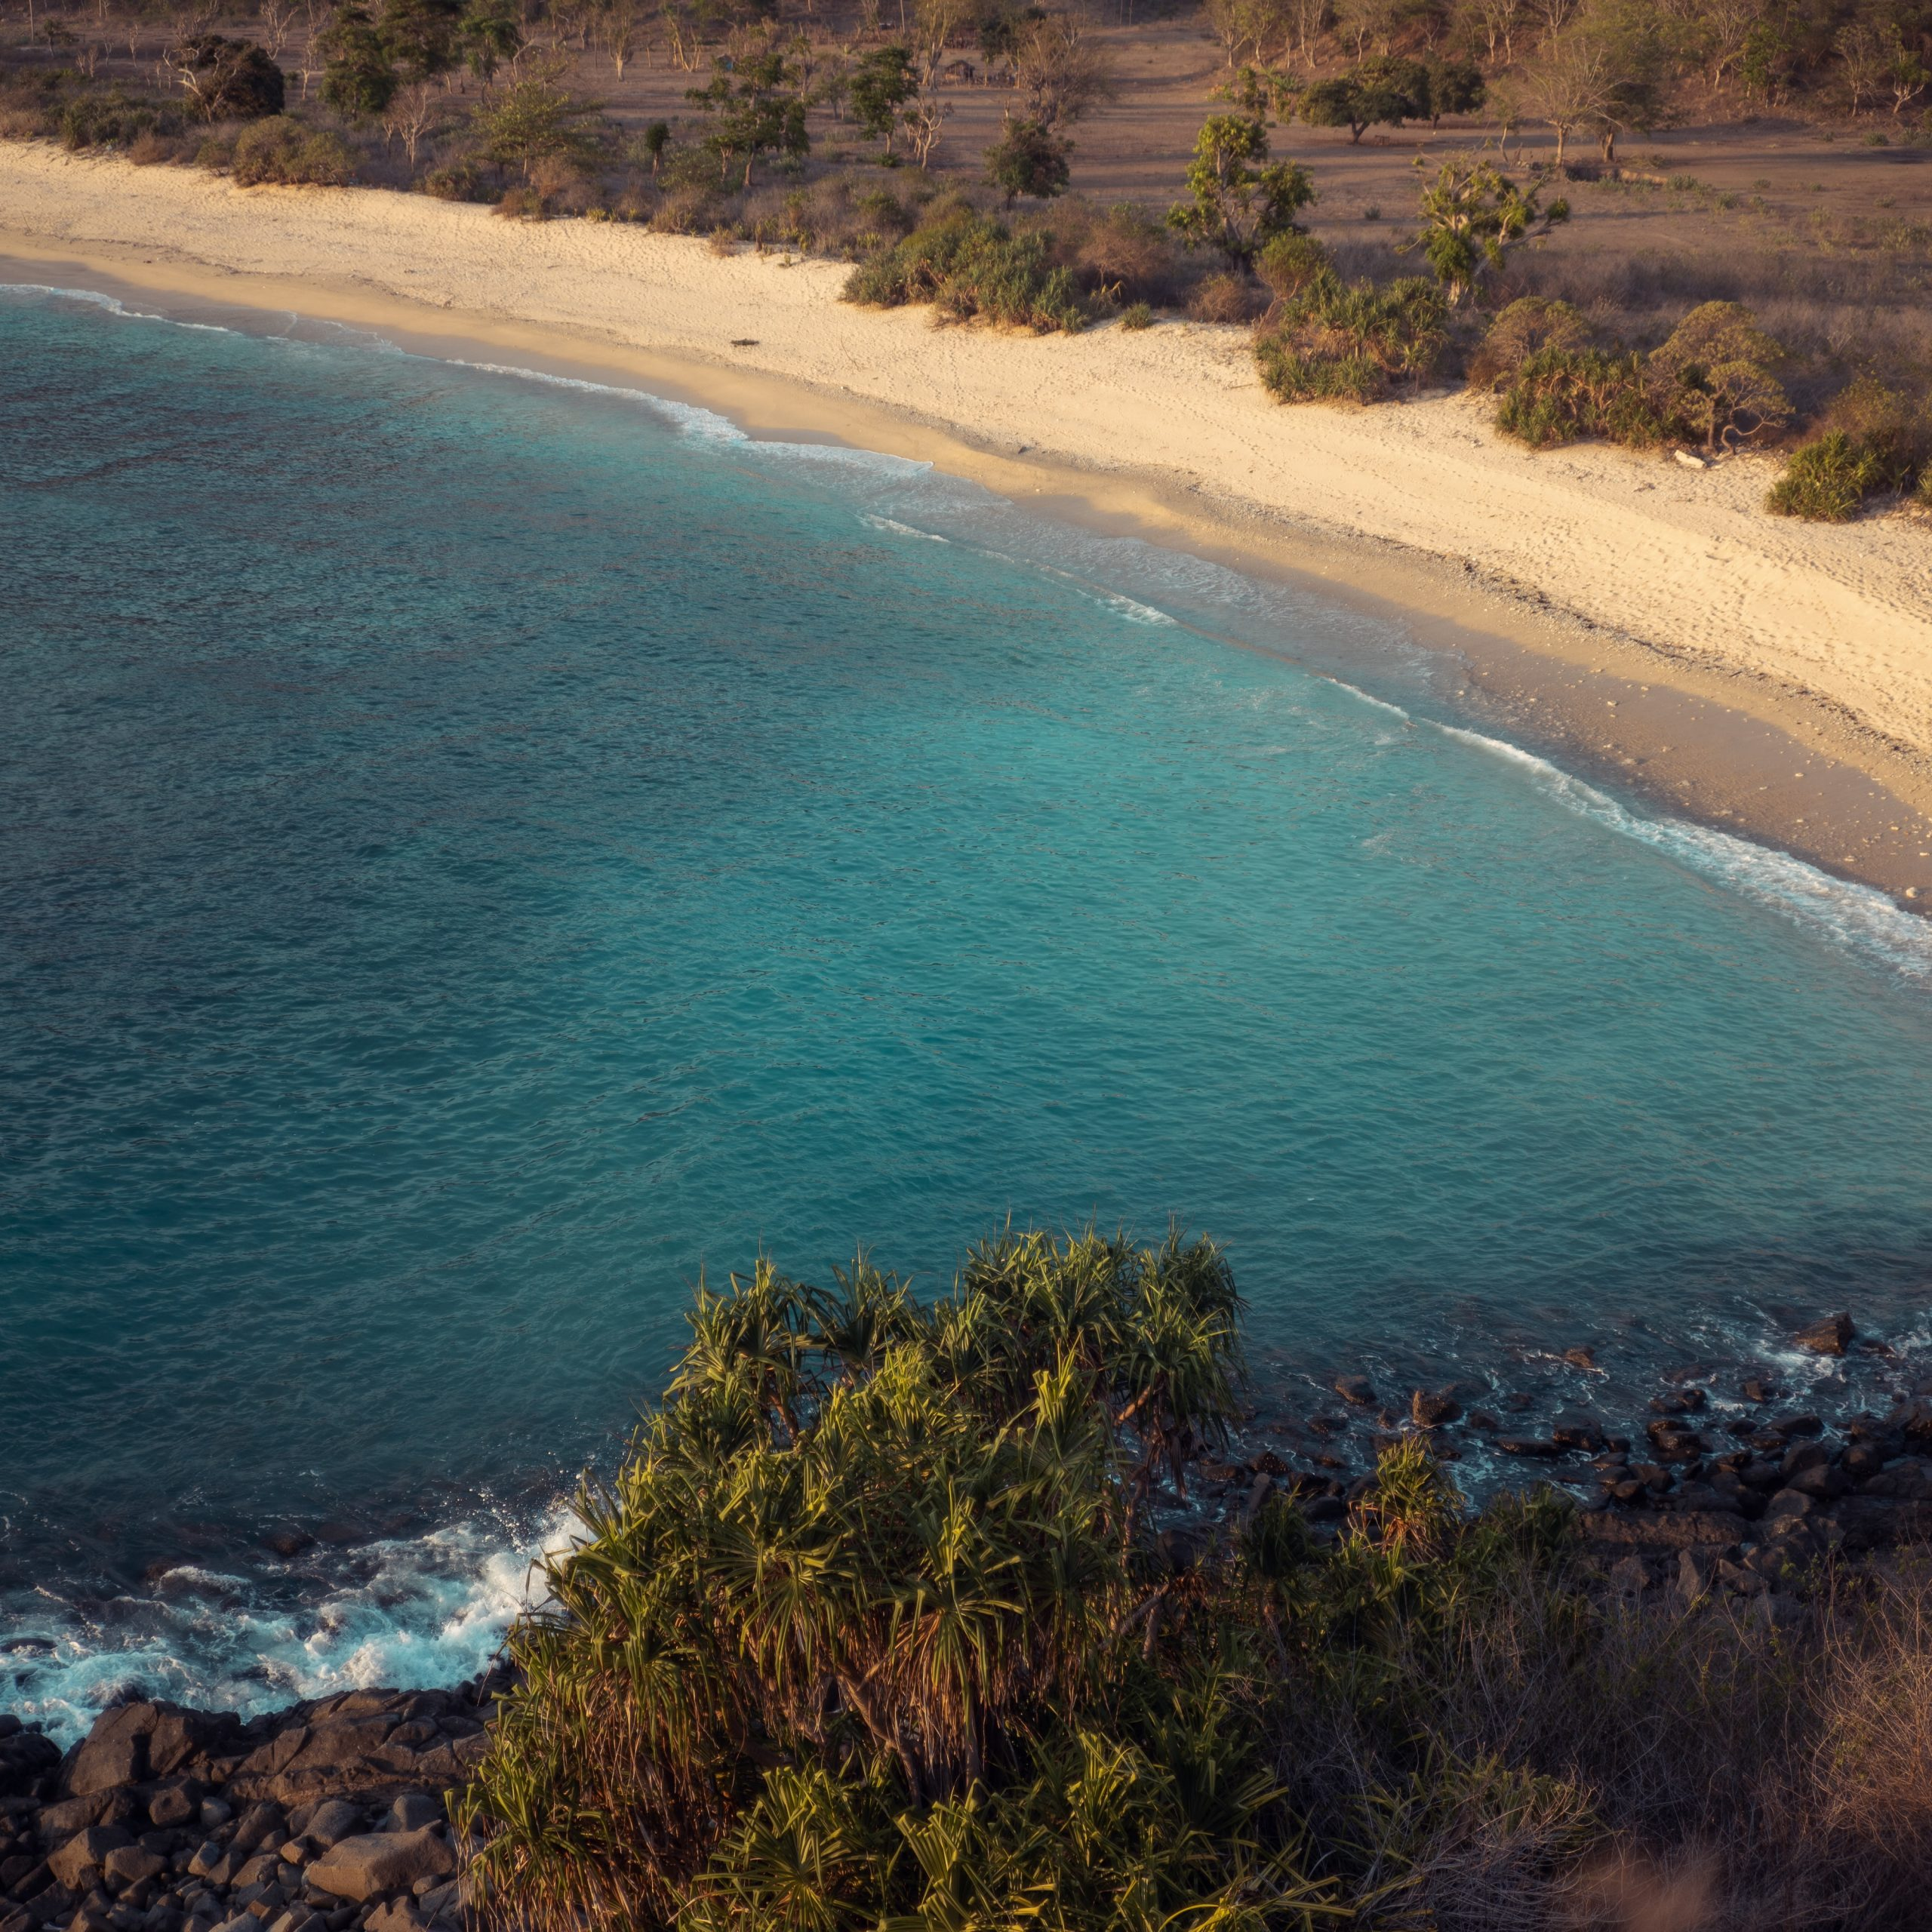 DAY 03 : LOMBOK - DEPARTURE